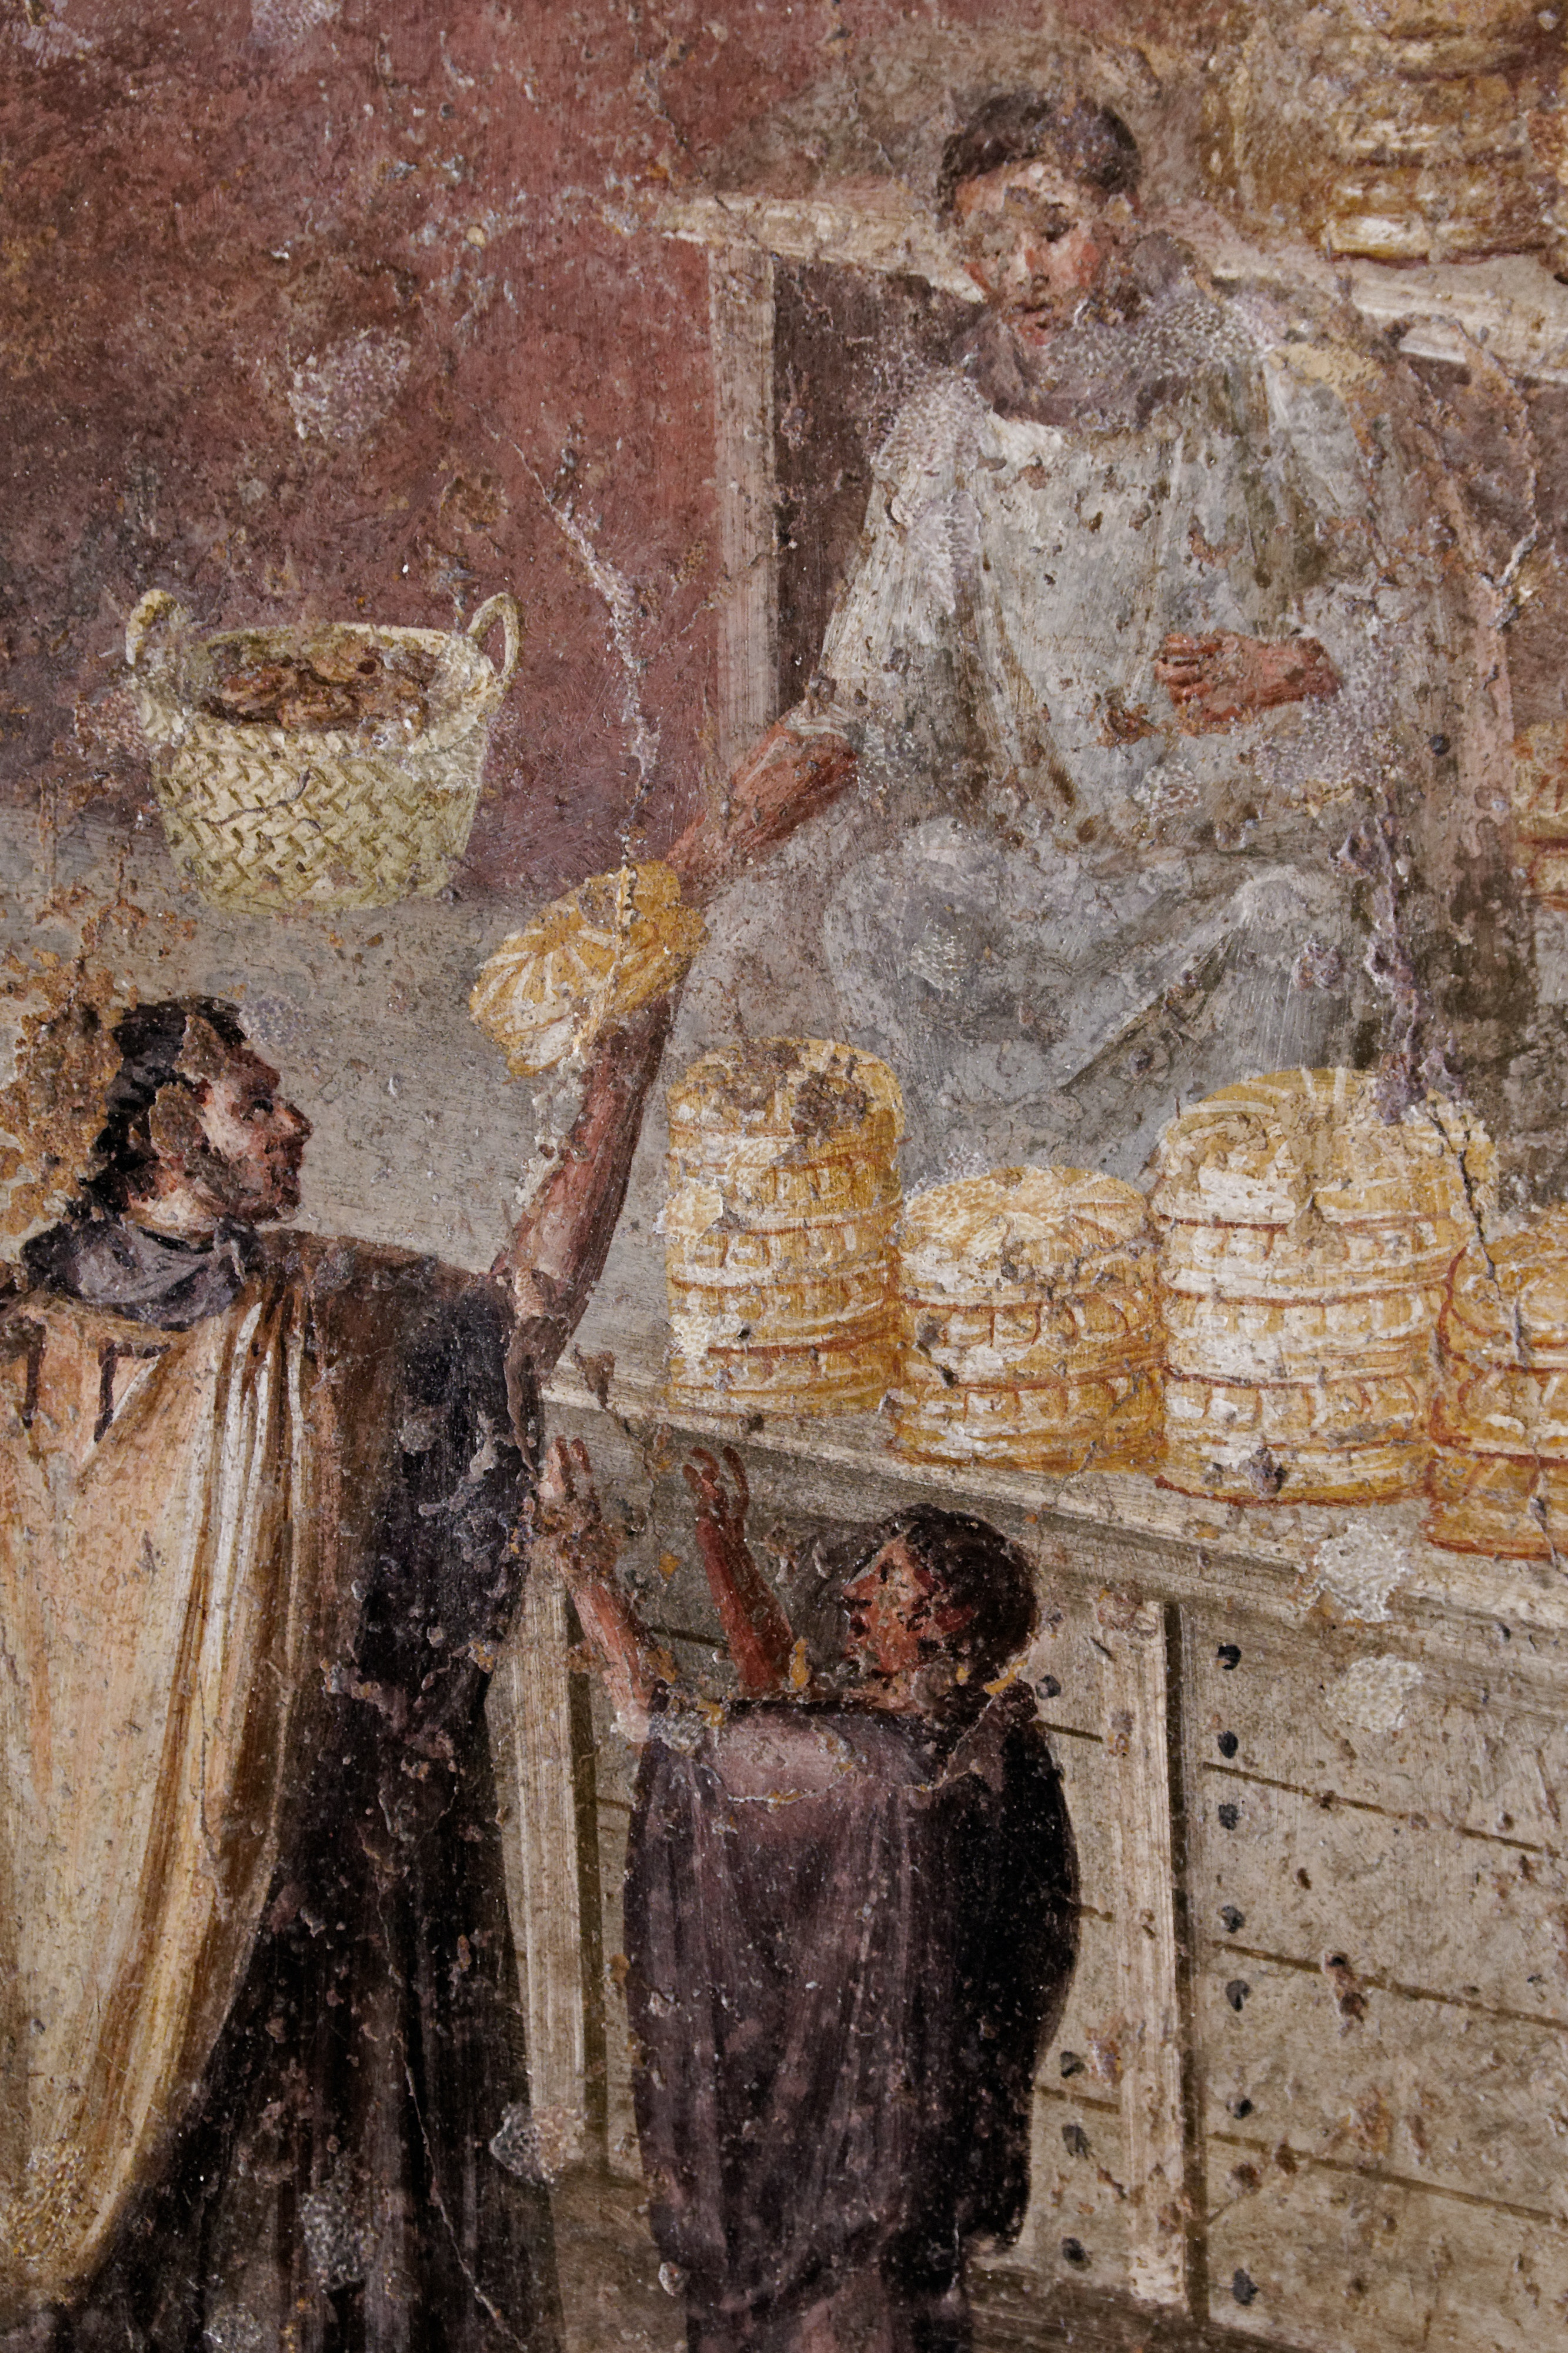 Why in ancient times people did not eat each other